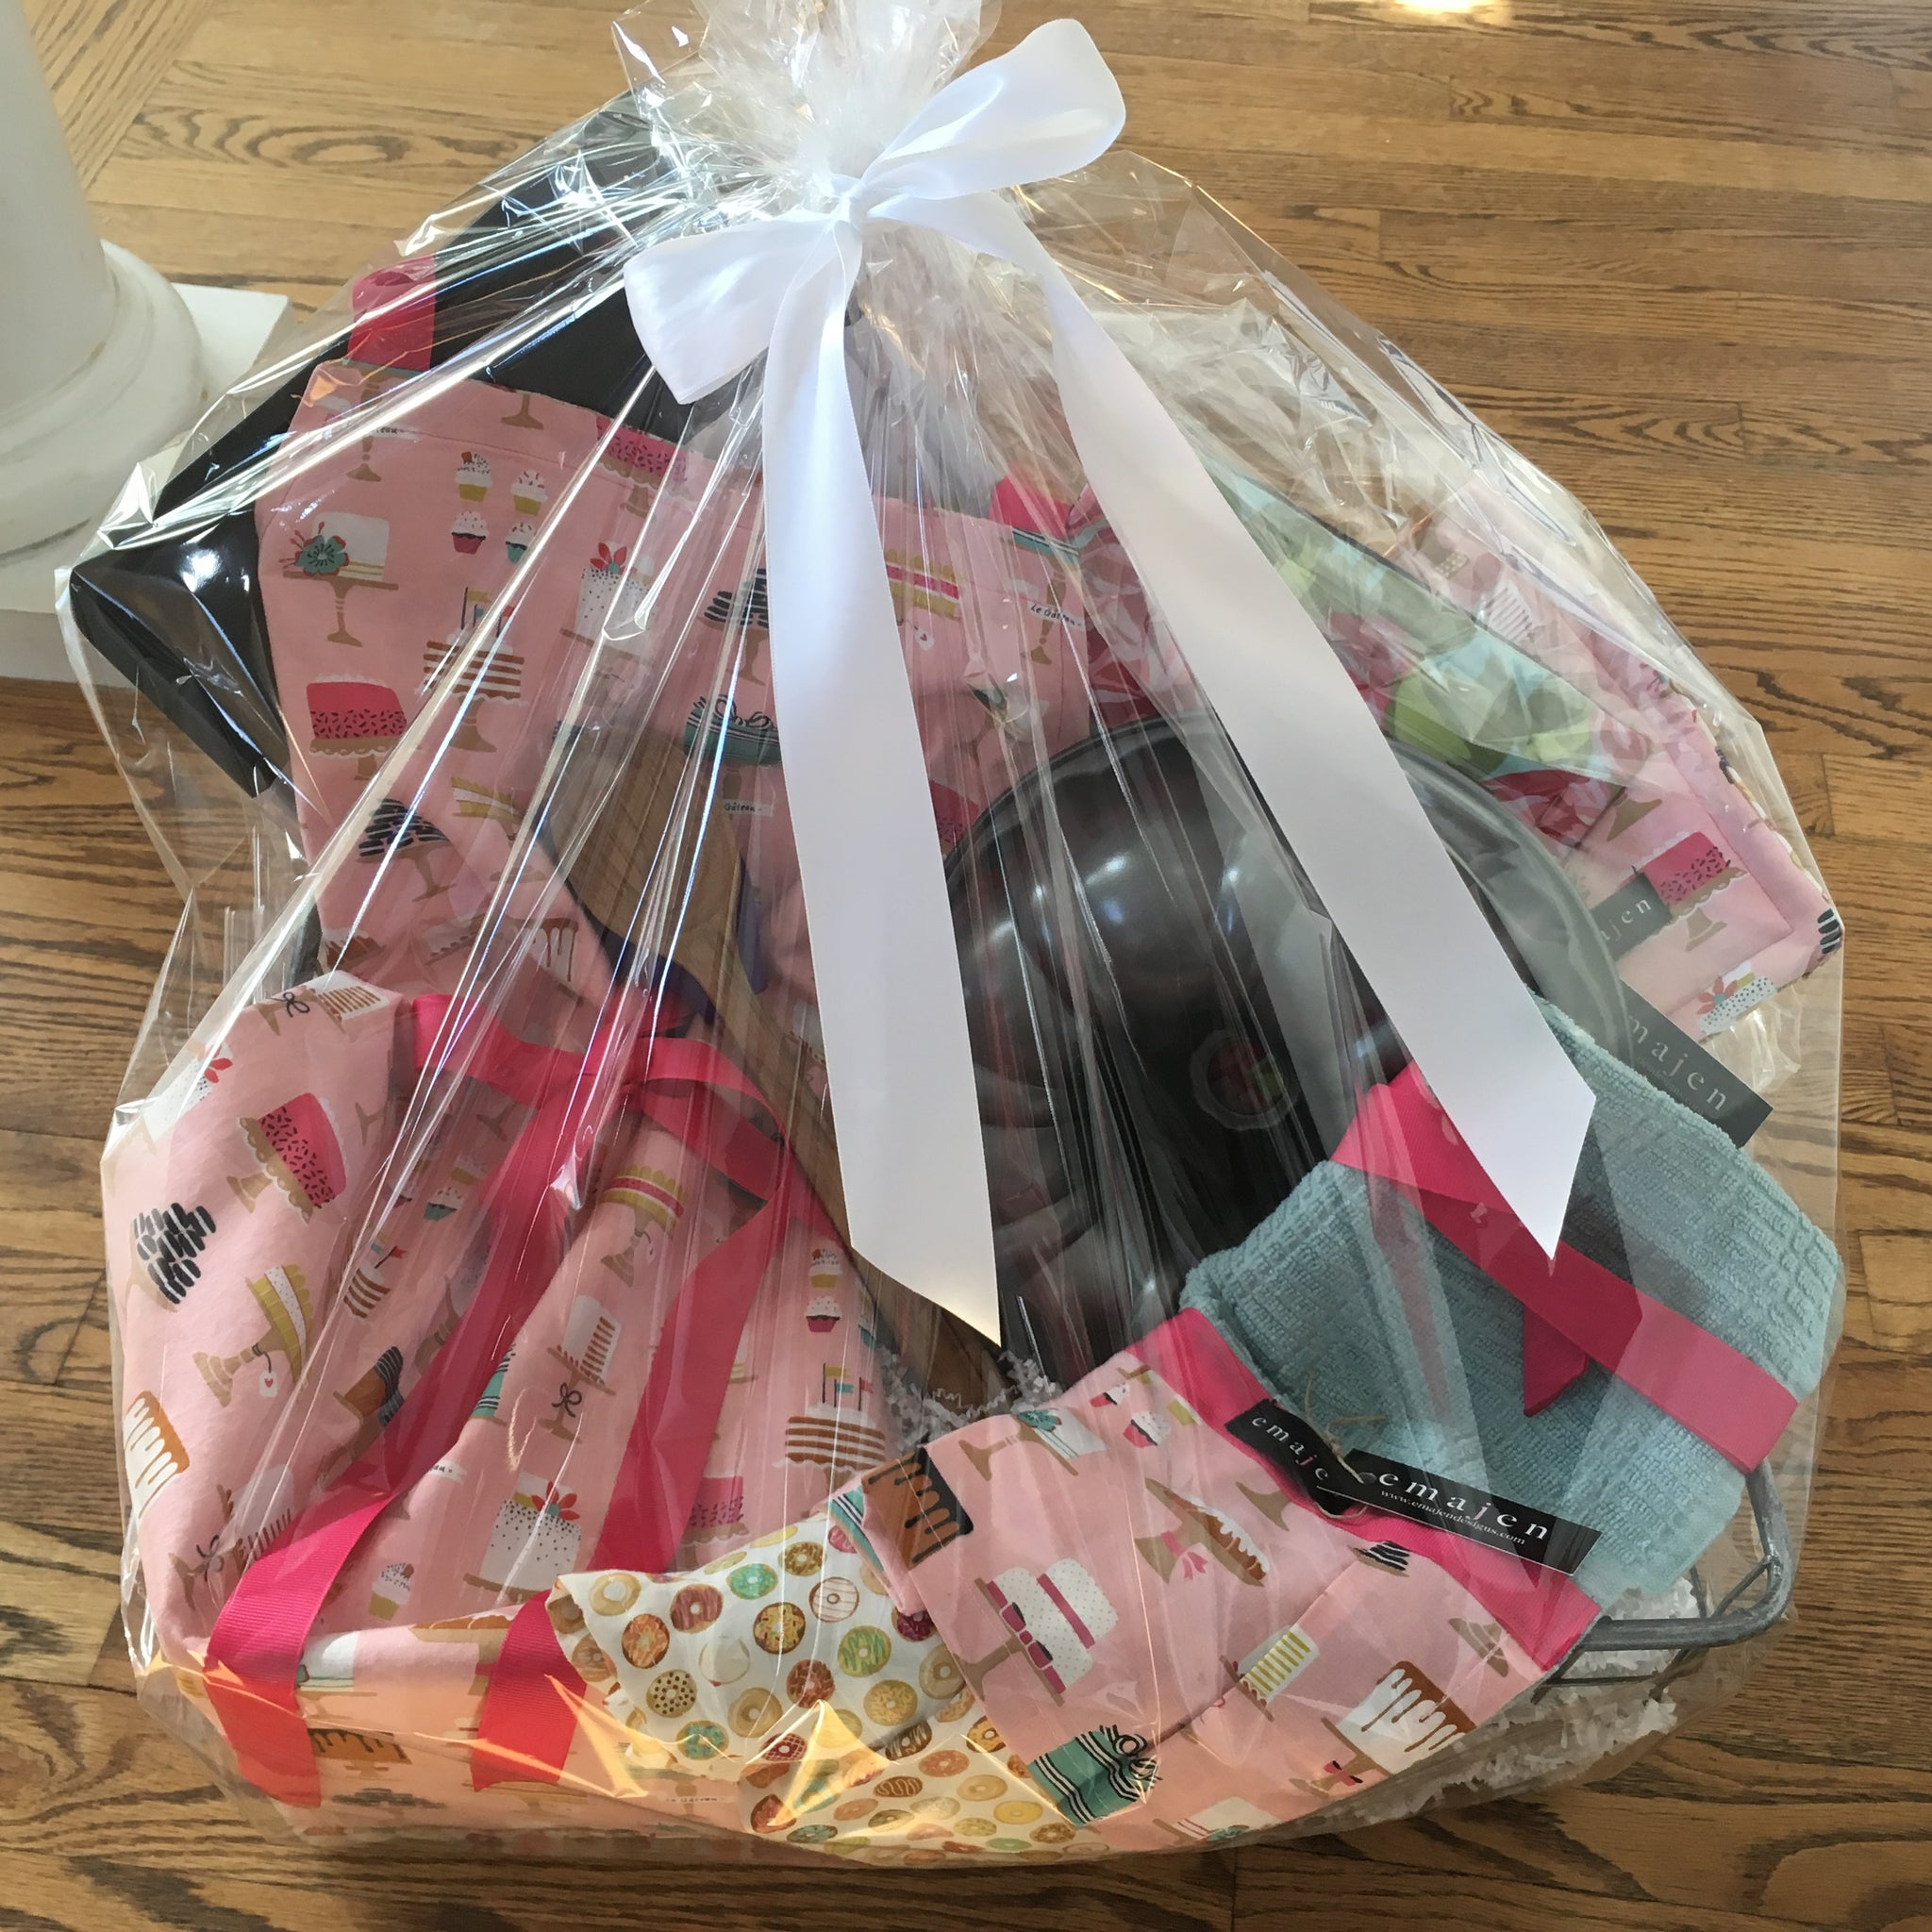 Gift Baskets - Home